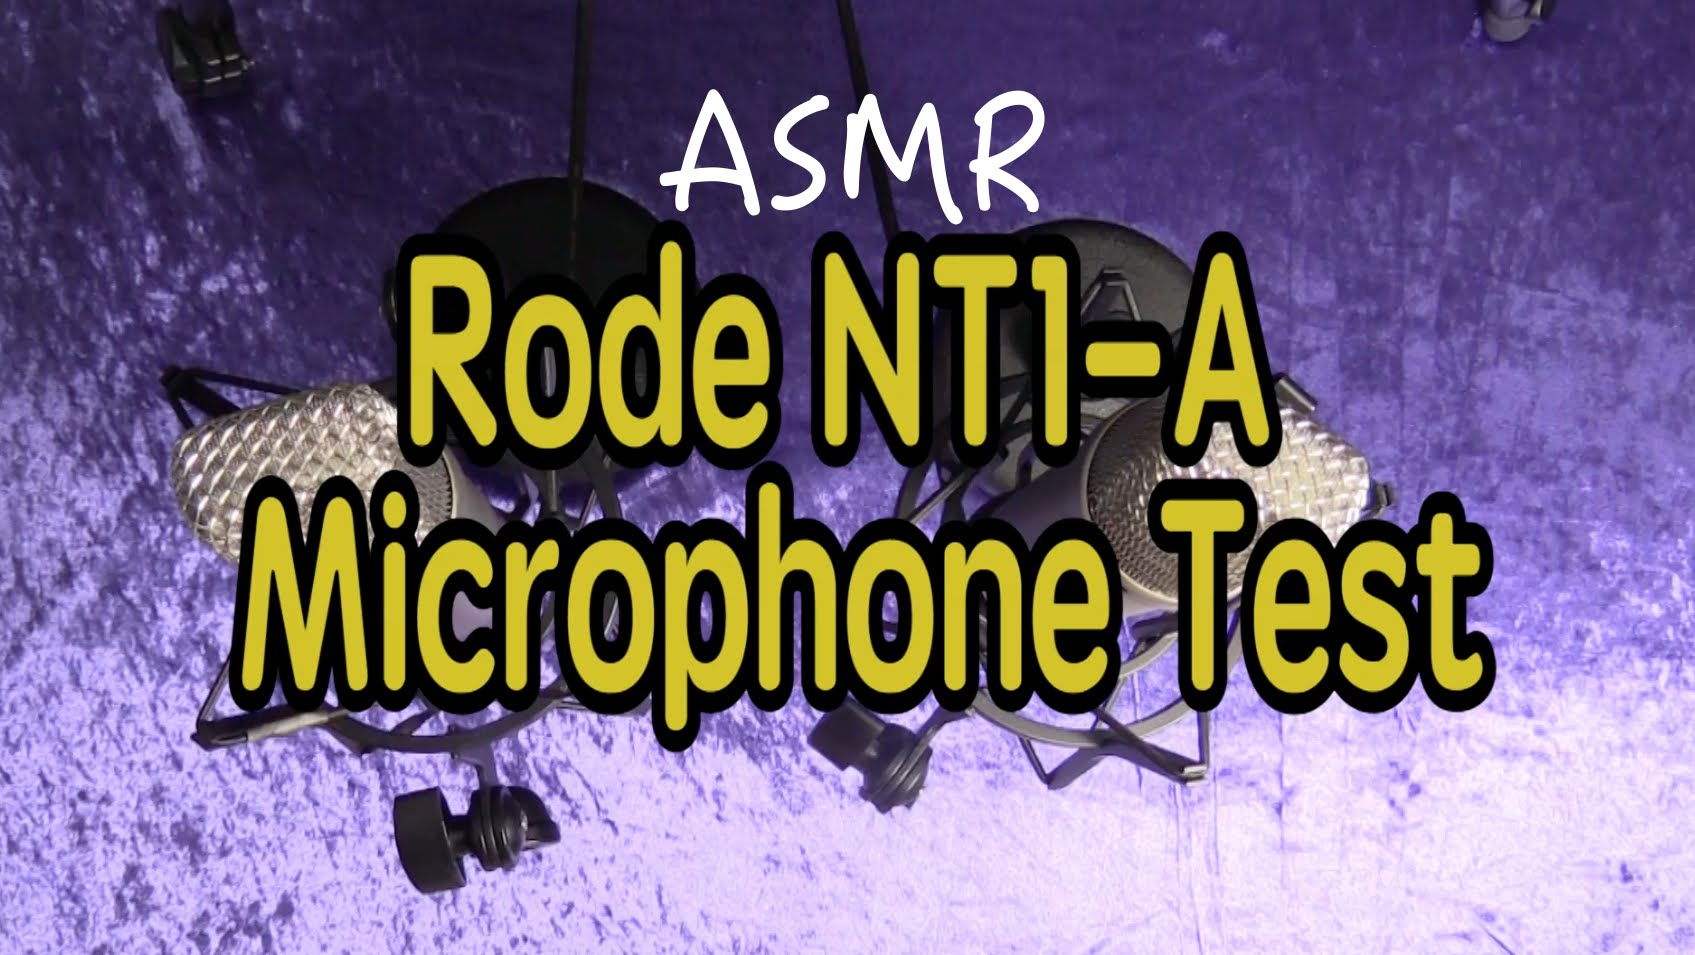 ASMR: Rode NT1A Microphone Test – Softly Spoken with Mixed Sounds